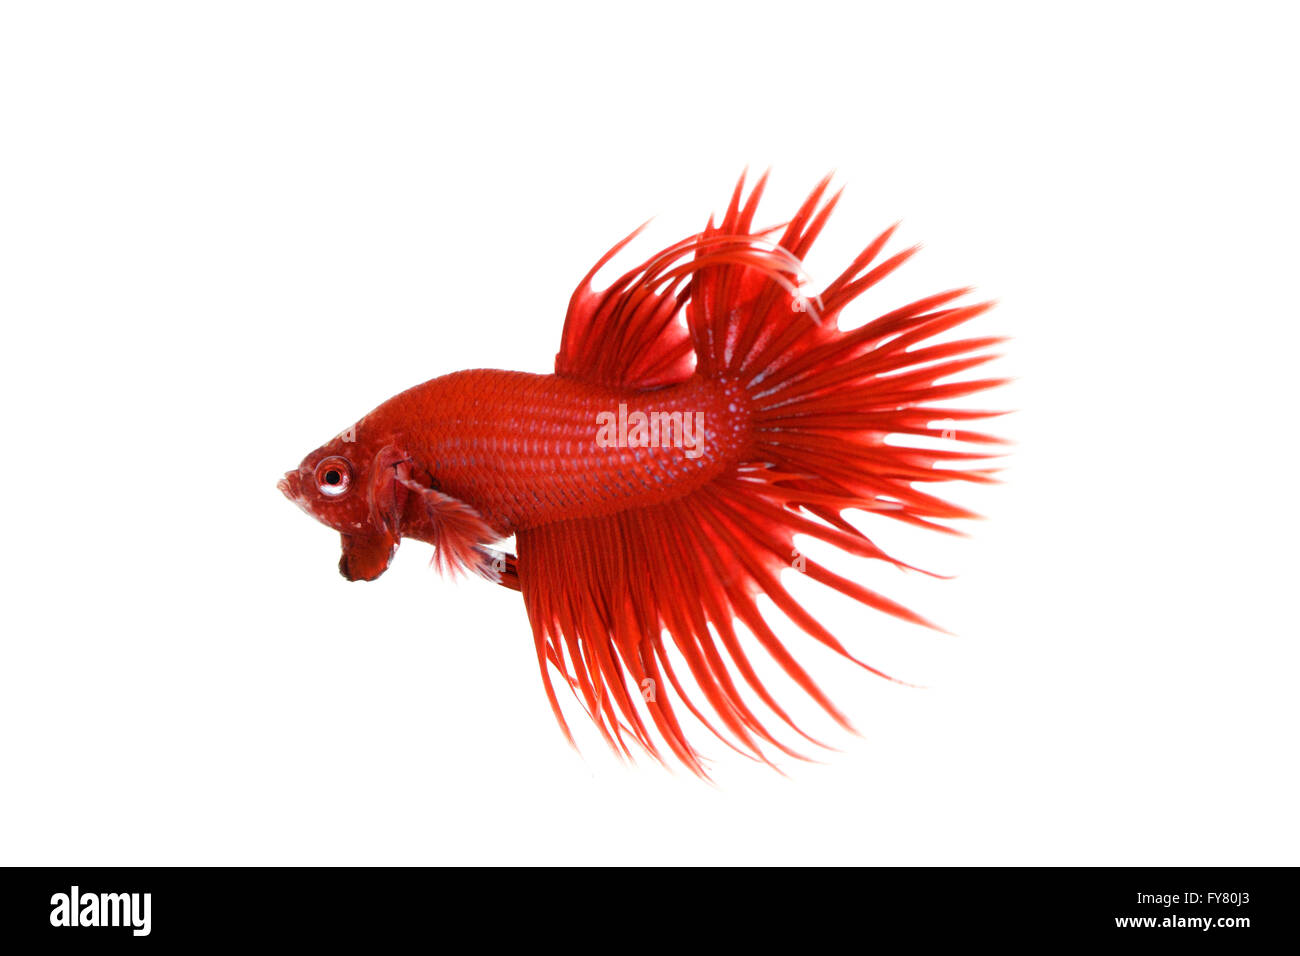 Red Crowntail Betta on white background Stock Photo